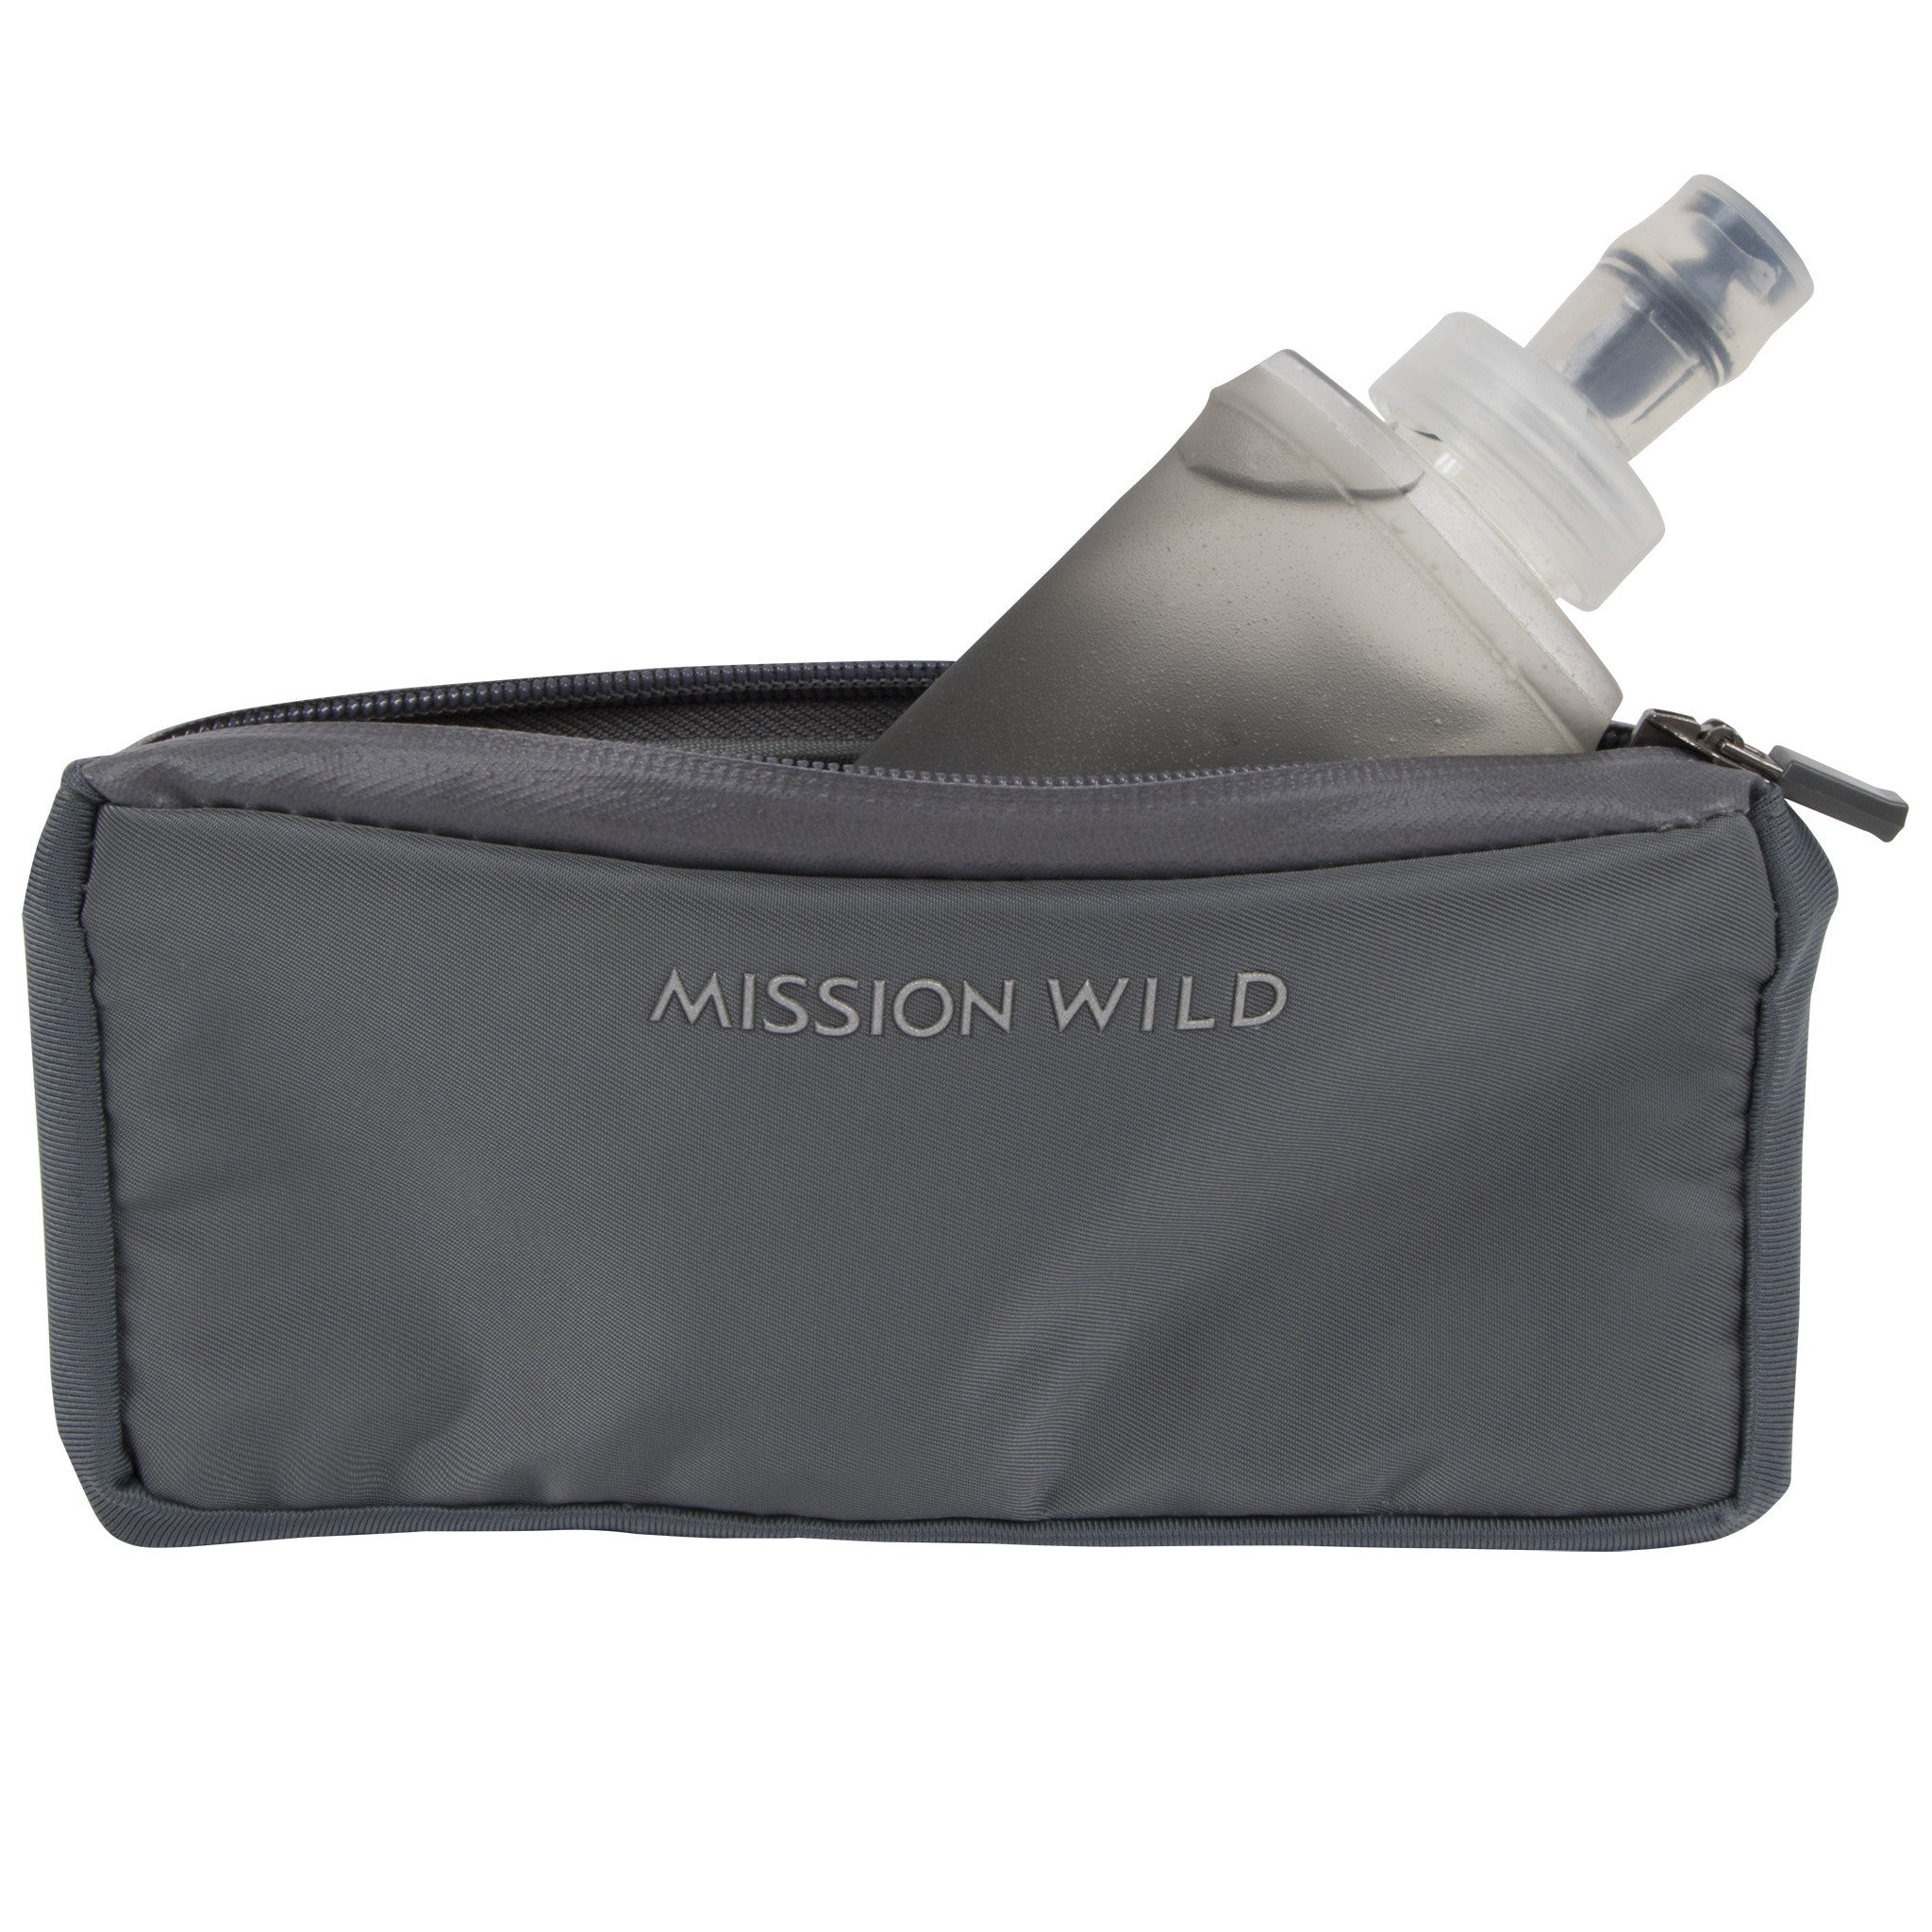 Image of Water Bottle Holder Pouch